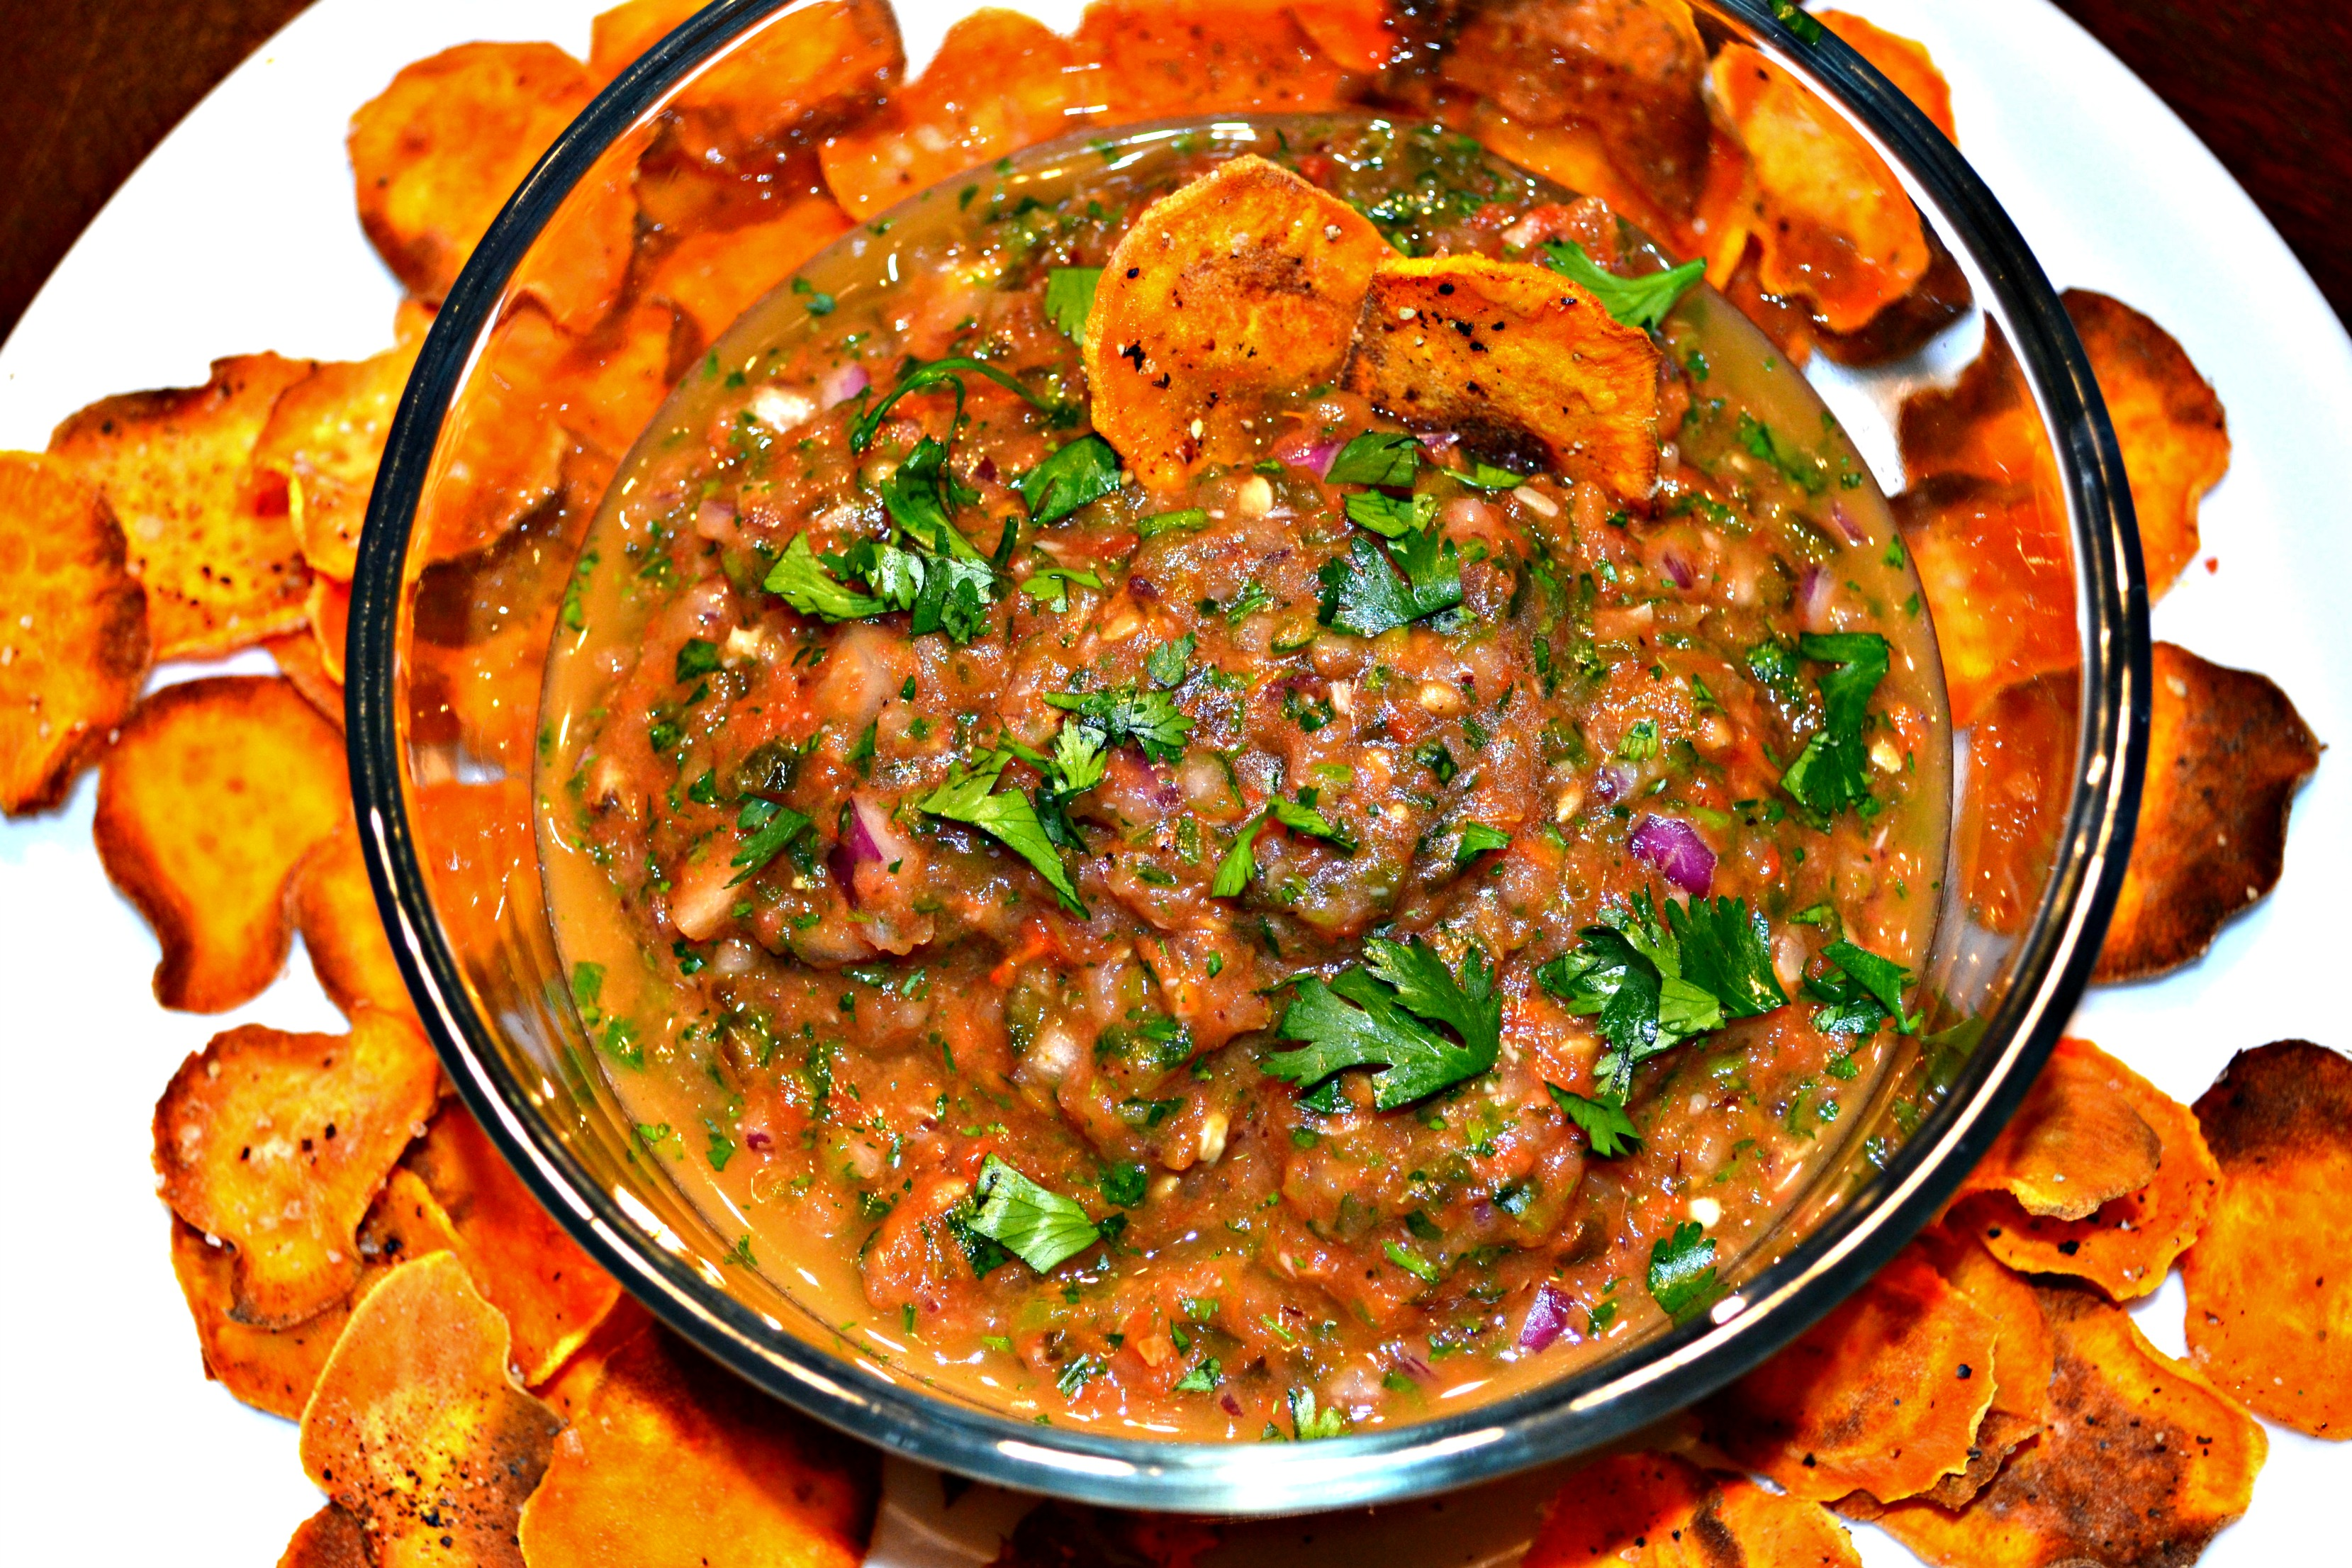 DSC 1708 1024x682 Roasted Tomato Salsa and Baked Sweet Potato Chips